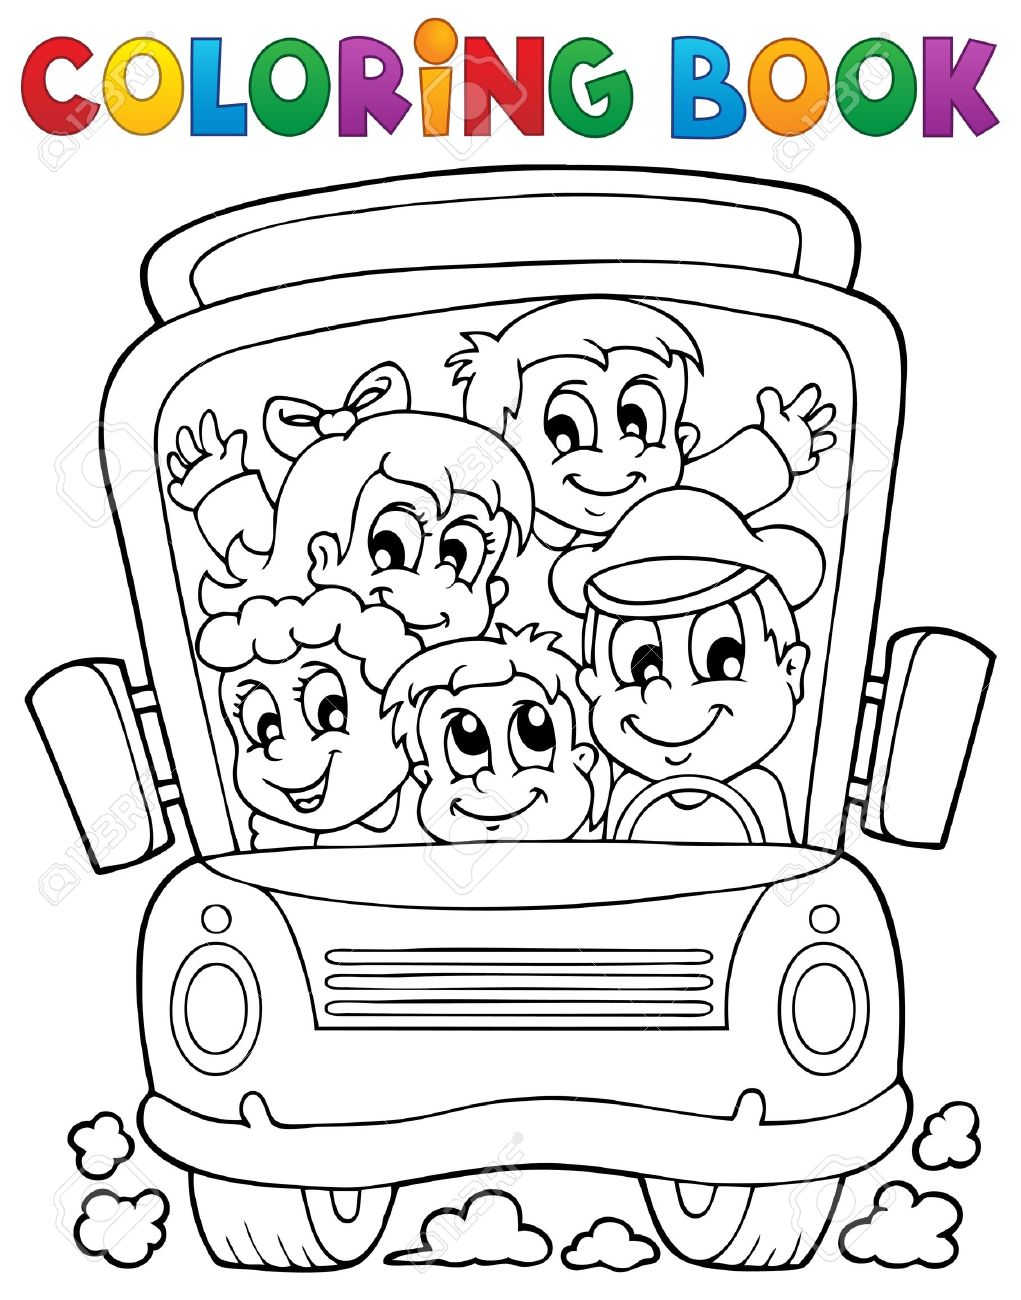 Coloring book school - Coloring Book School Bus Theme Stock Vector 21055338